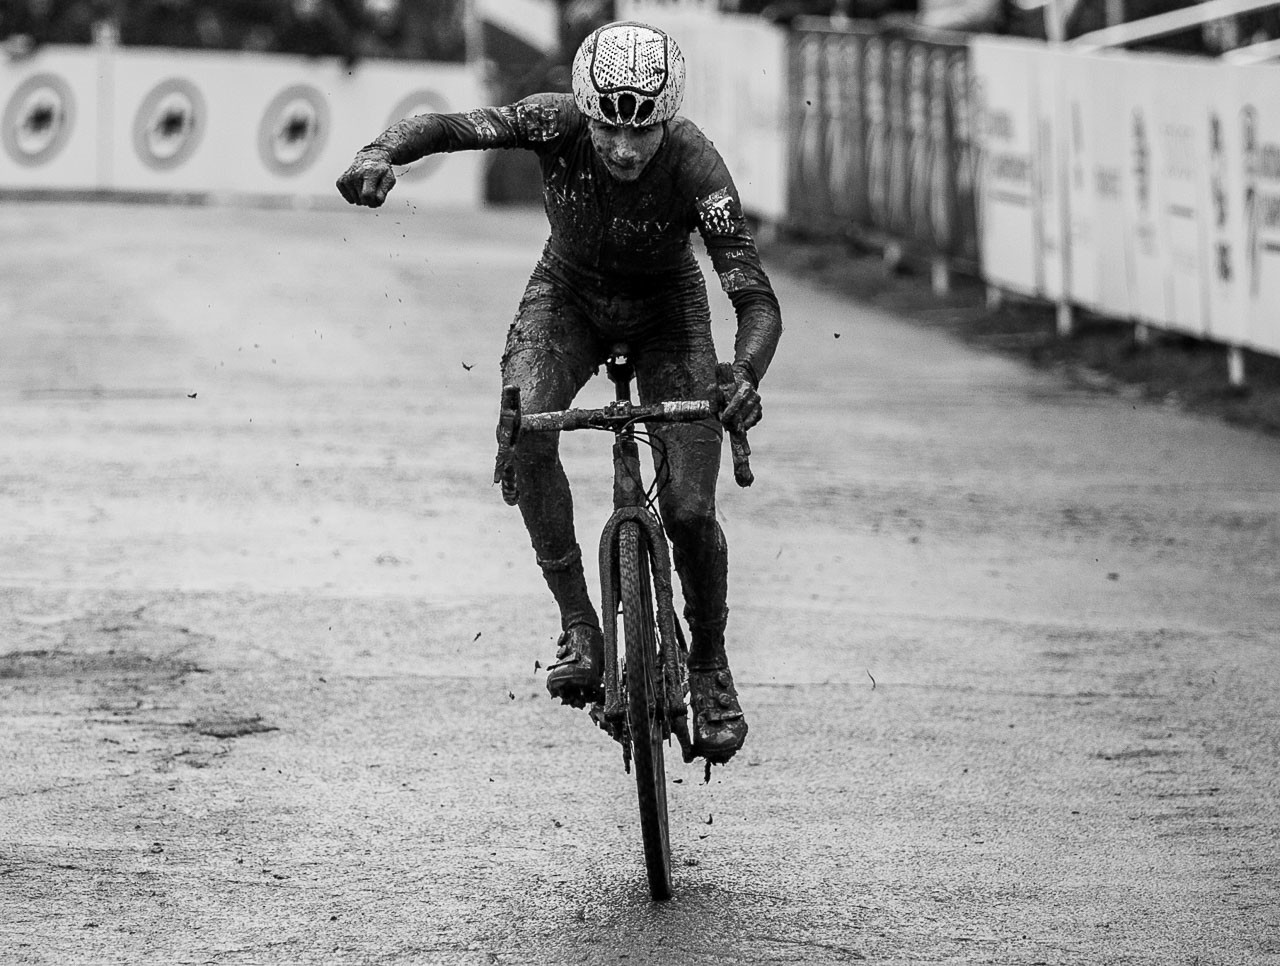 Dylan Zakrajsek scooted his way to a second place. Junior Men 15-16. 2018 Cyclocross National Championships, Louisville, KY. © A. Yee / Cyclocross Magazine